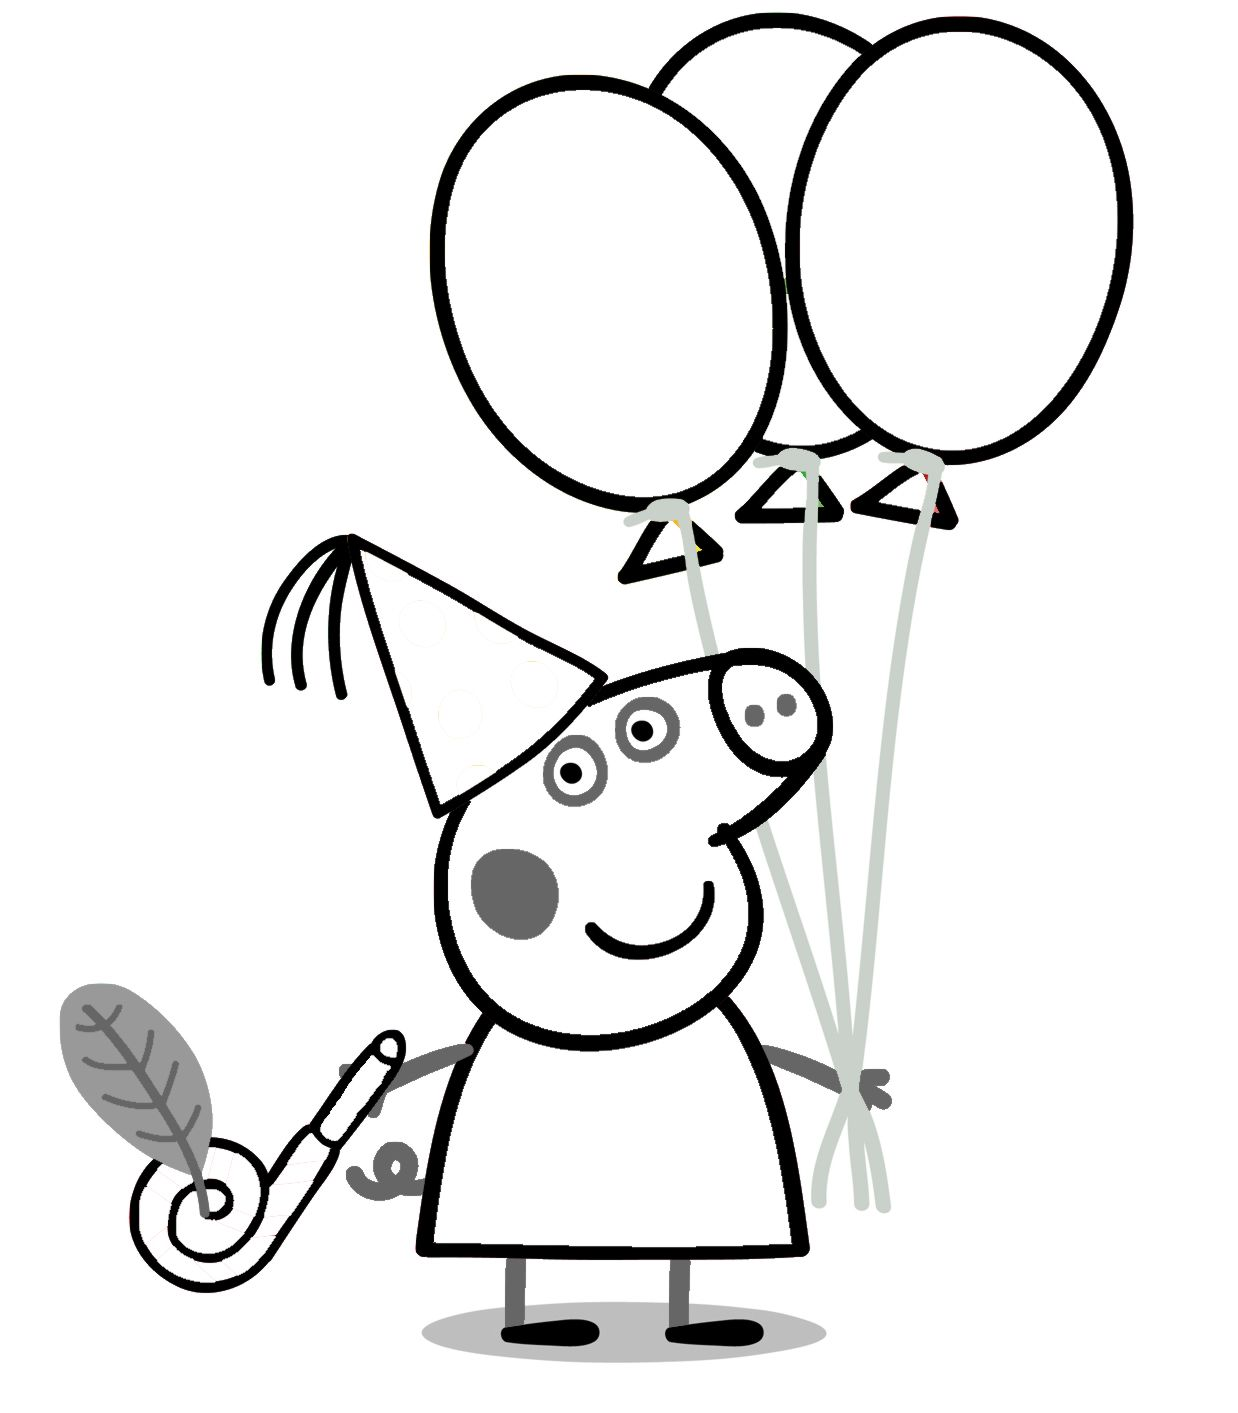 peppa pig coloring pages Google